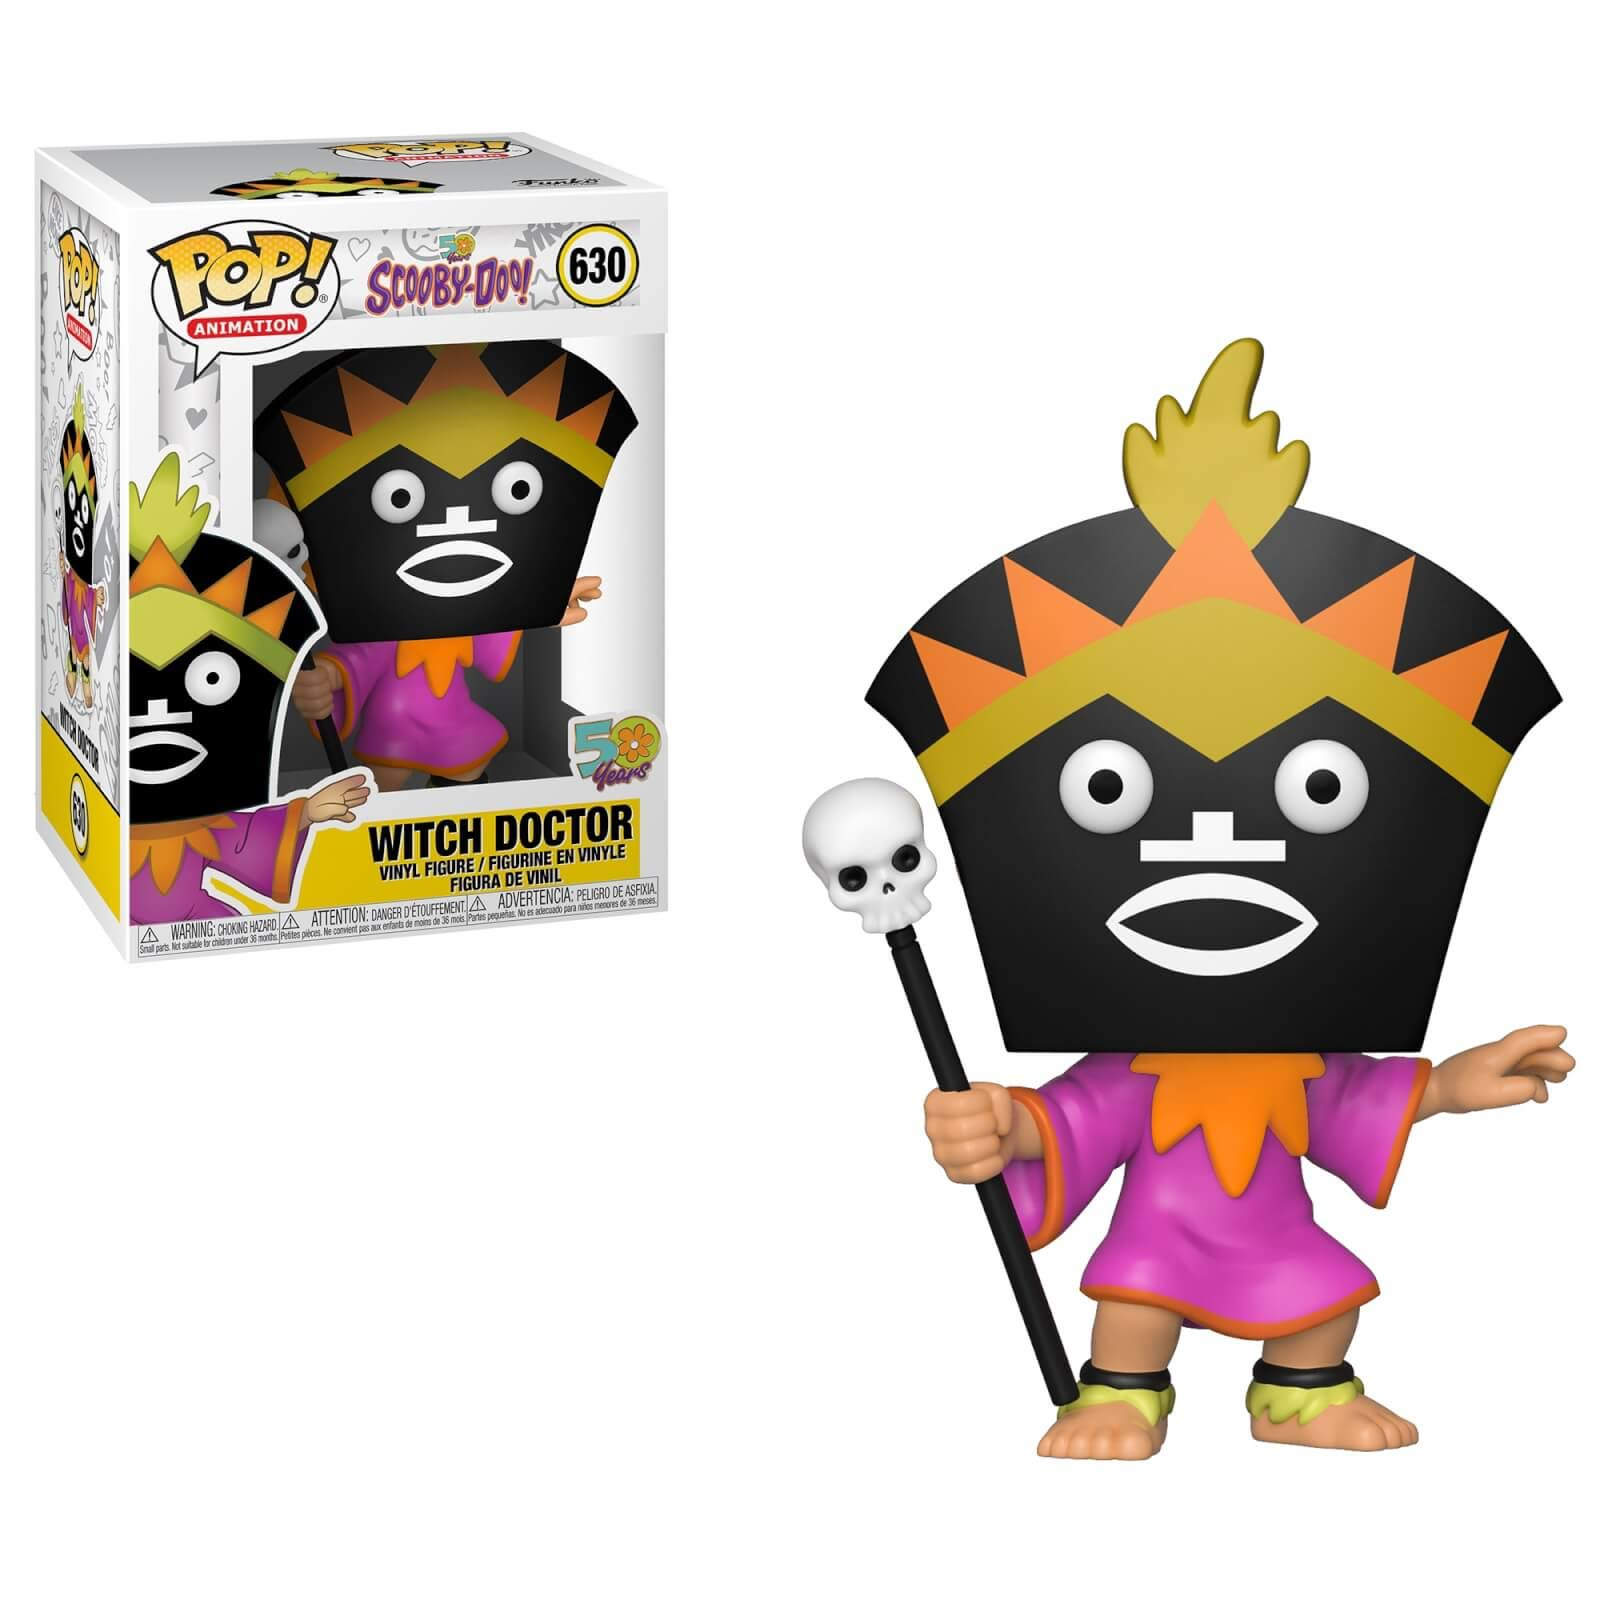 Funko Witch Doctor - Scooby-Doo: Pop! Animation